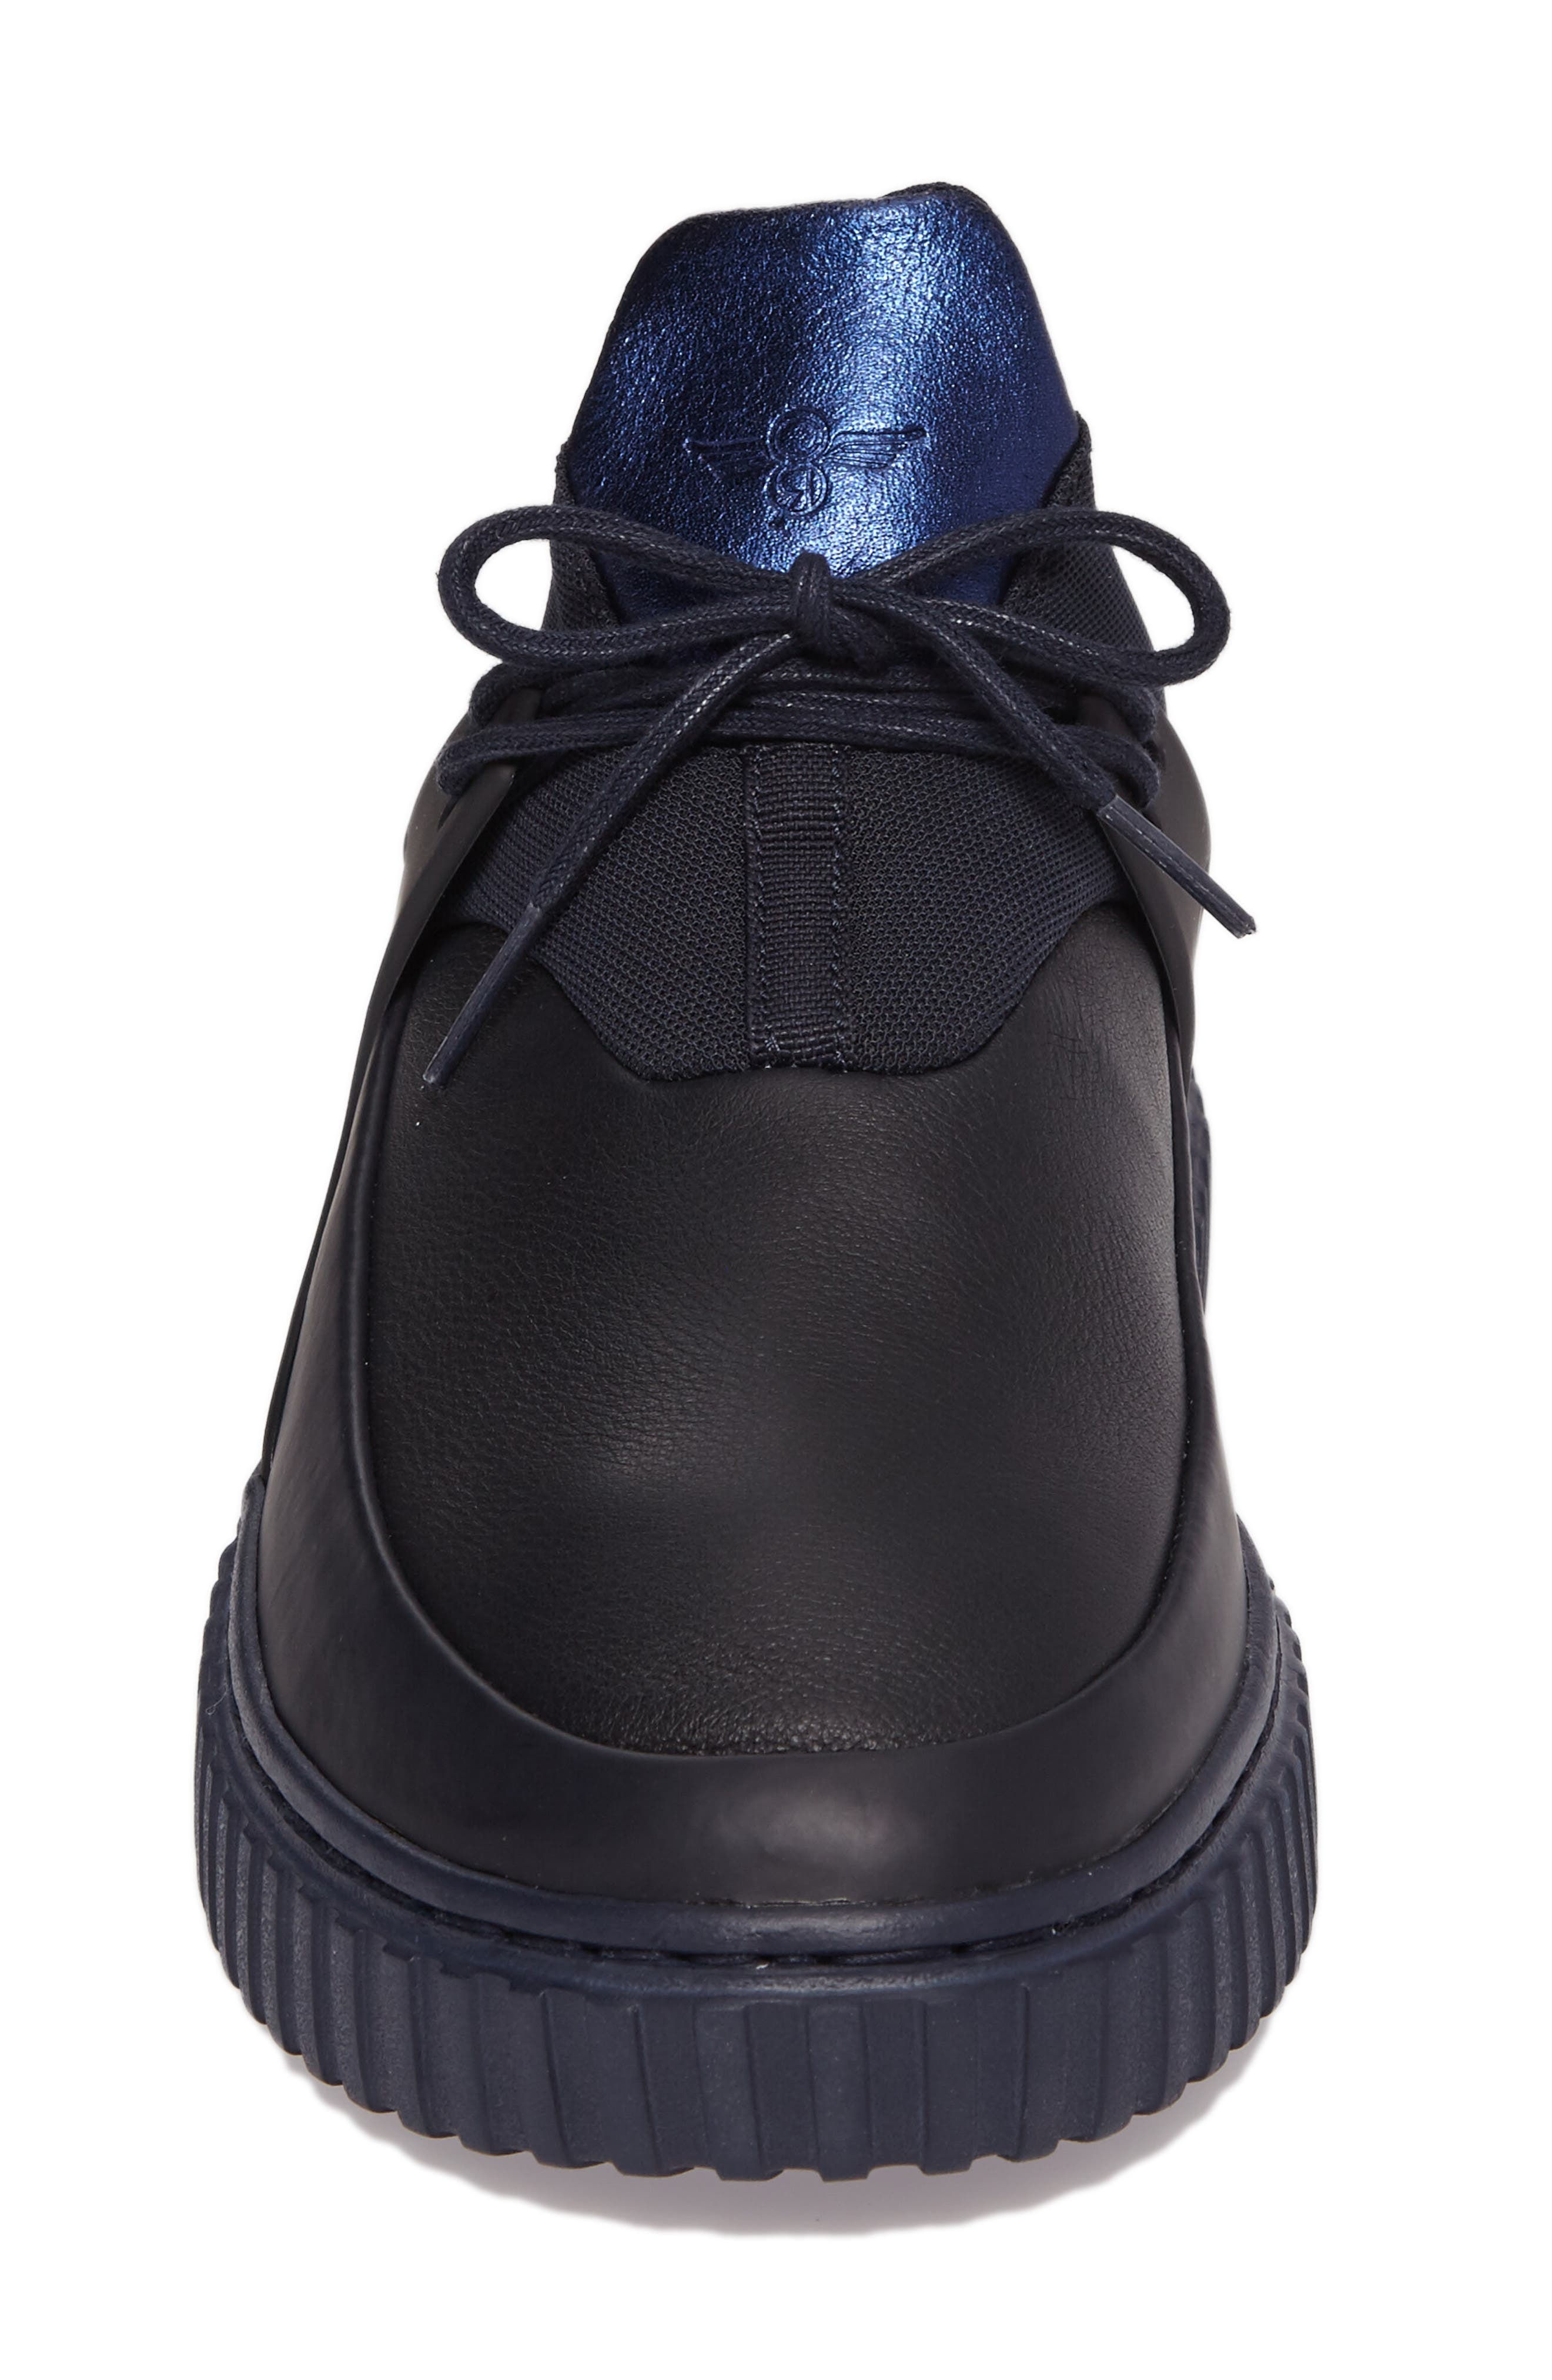 Castucci Mid Sneaker,                             Alternate thumbnail 4, color,                             Navy Leather